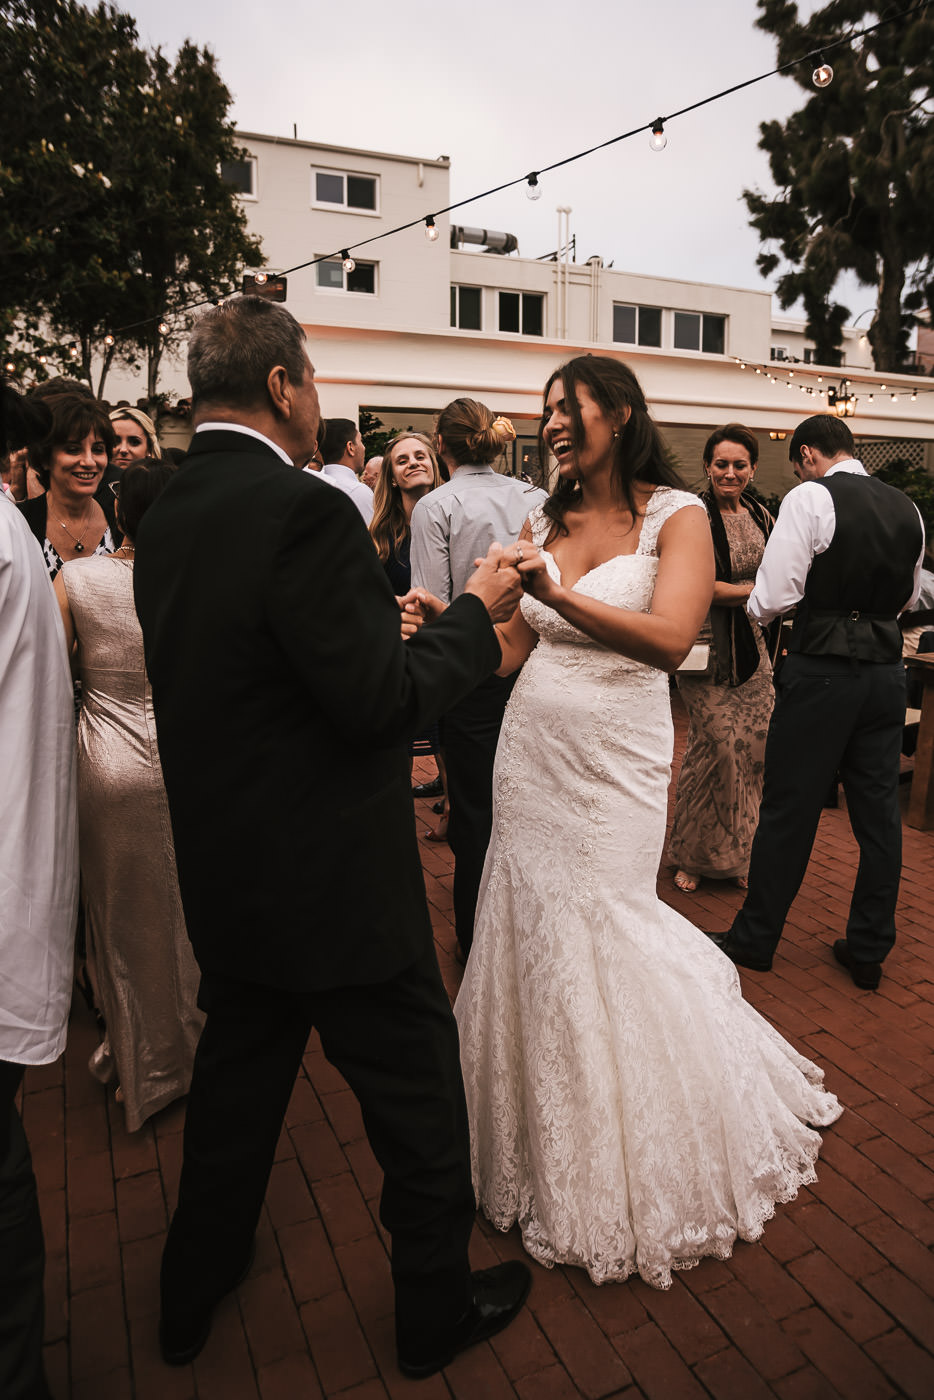 Bride dances with her wedding guests.